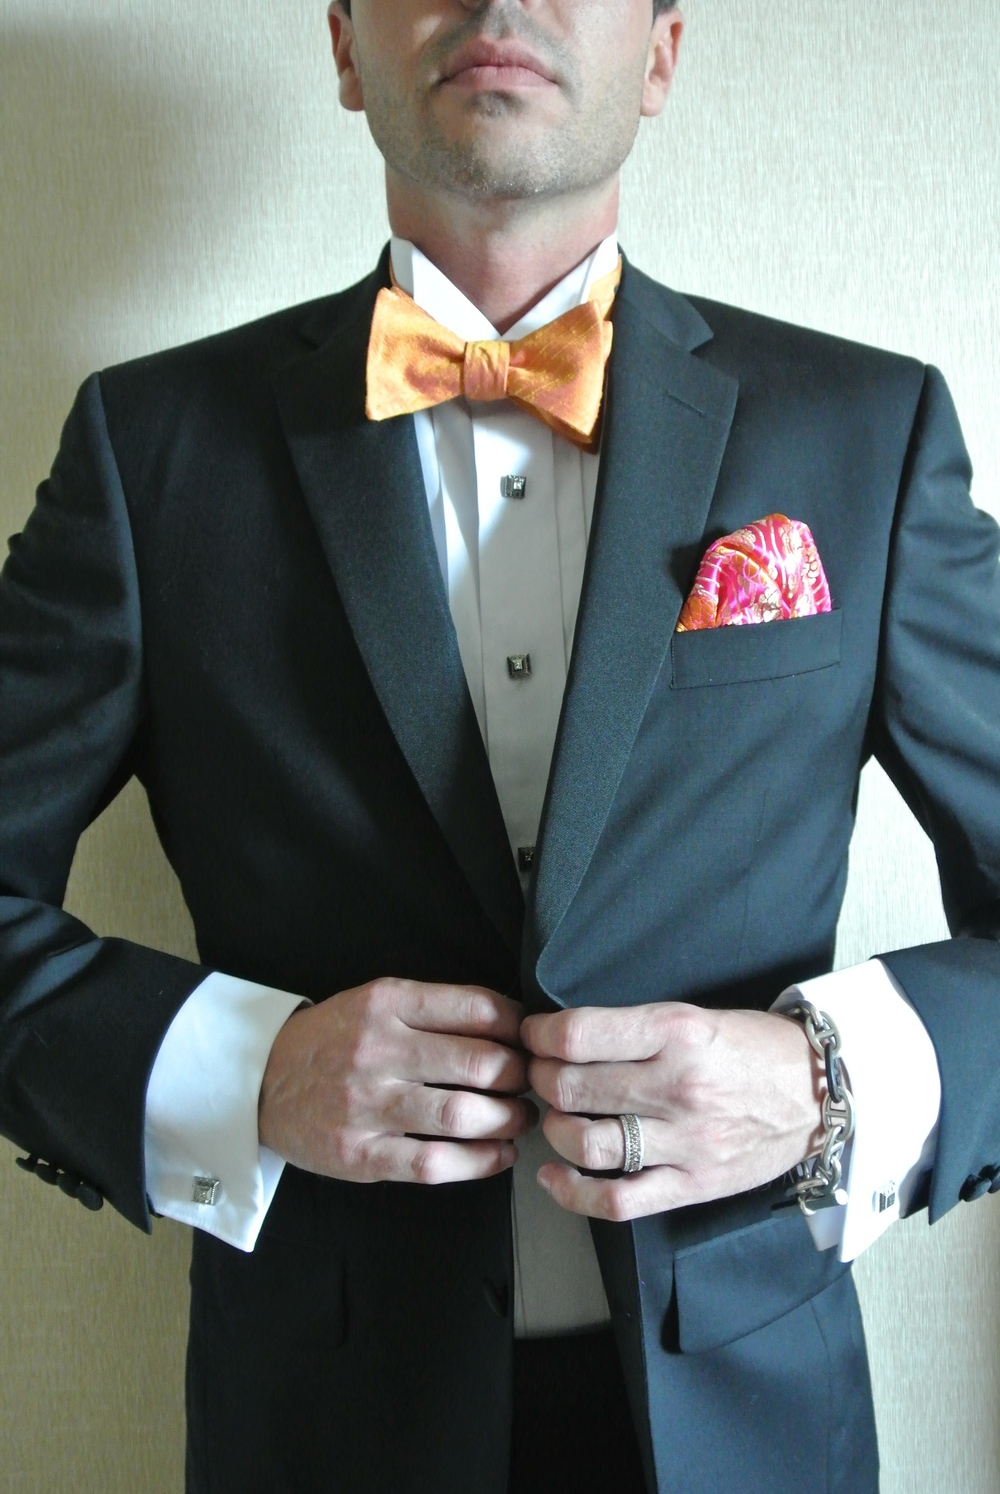 To marry his long time love, Marek accessorized his Vera Wang Black Tux with custom made orange bowtie, a pink and tangerine pocket square, and both cufflinks and button covers.  His chocolate diamond engagement ring was firmly on his finger.   Las Vegas Wedding Planner Andrea Eppolito  |    Photo by Andrea Eppolito.